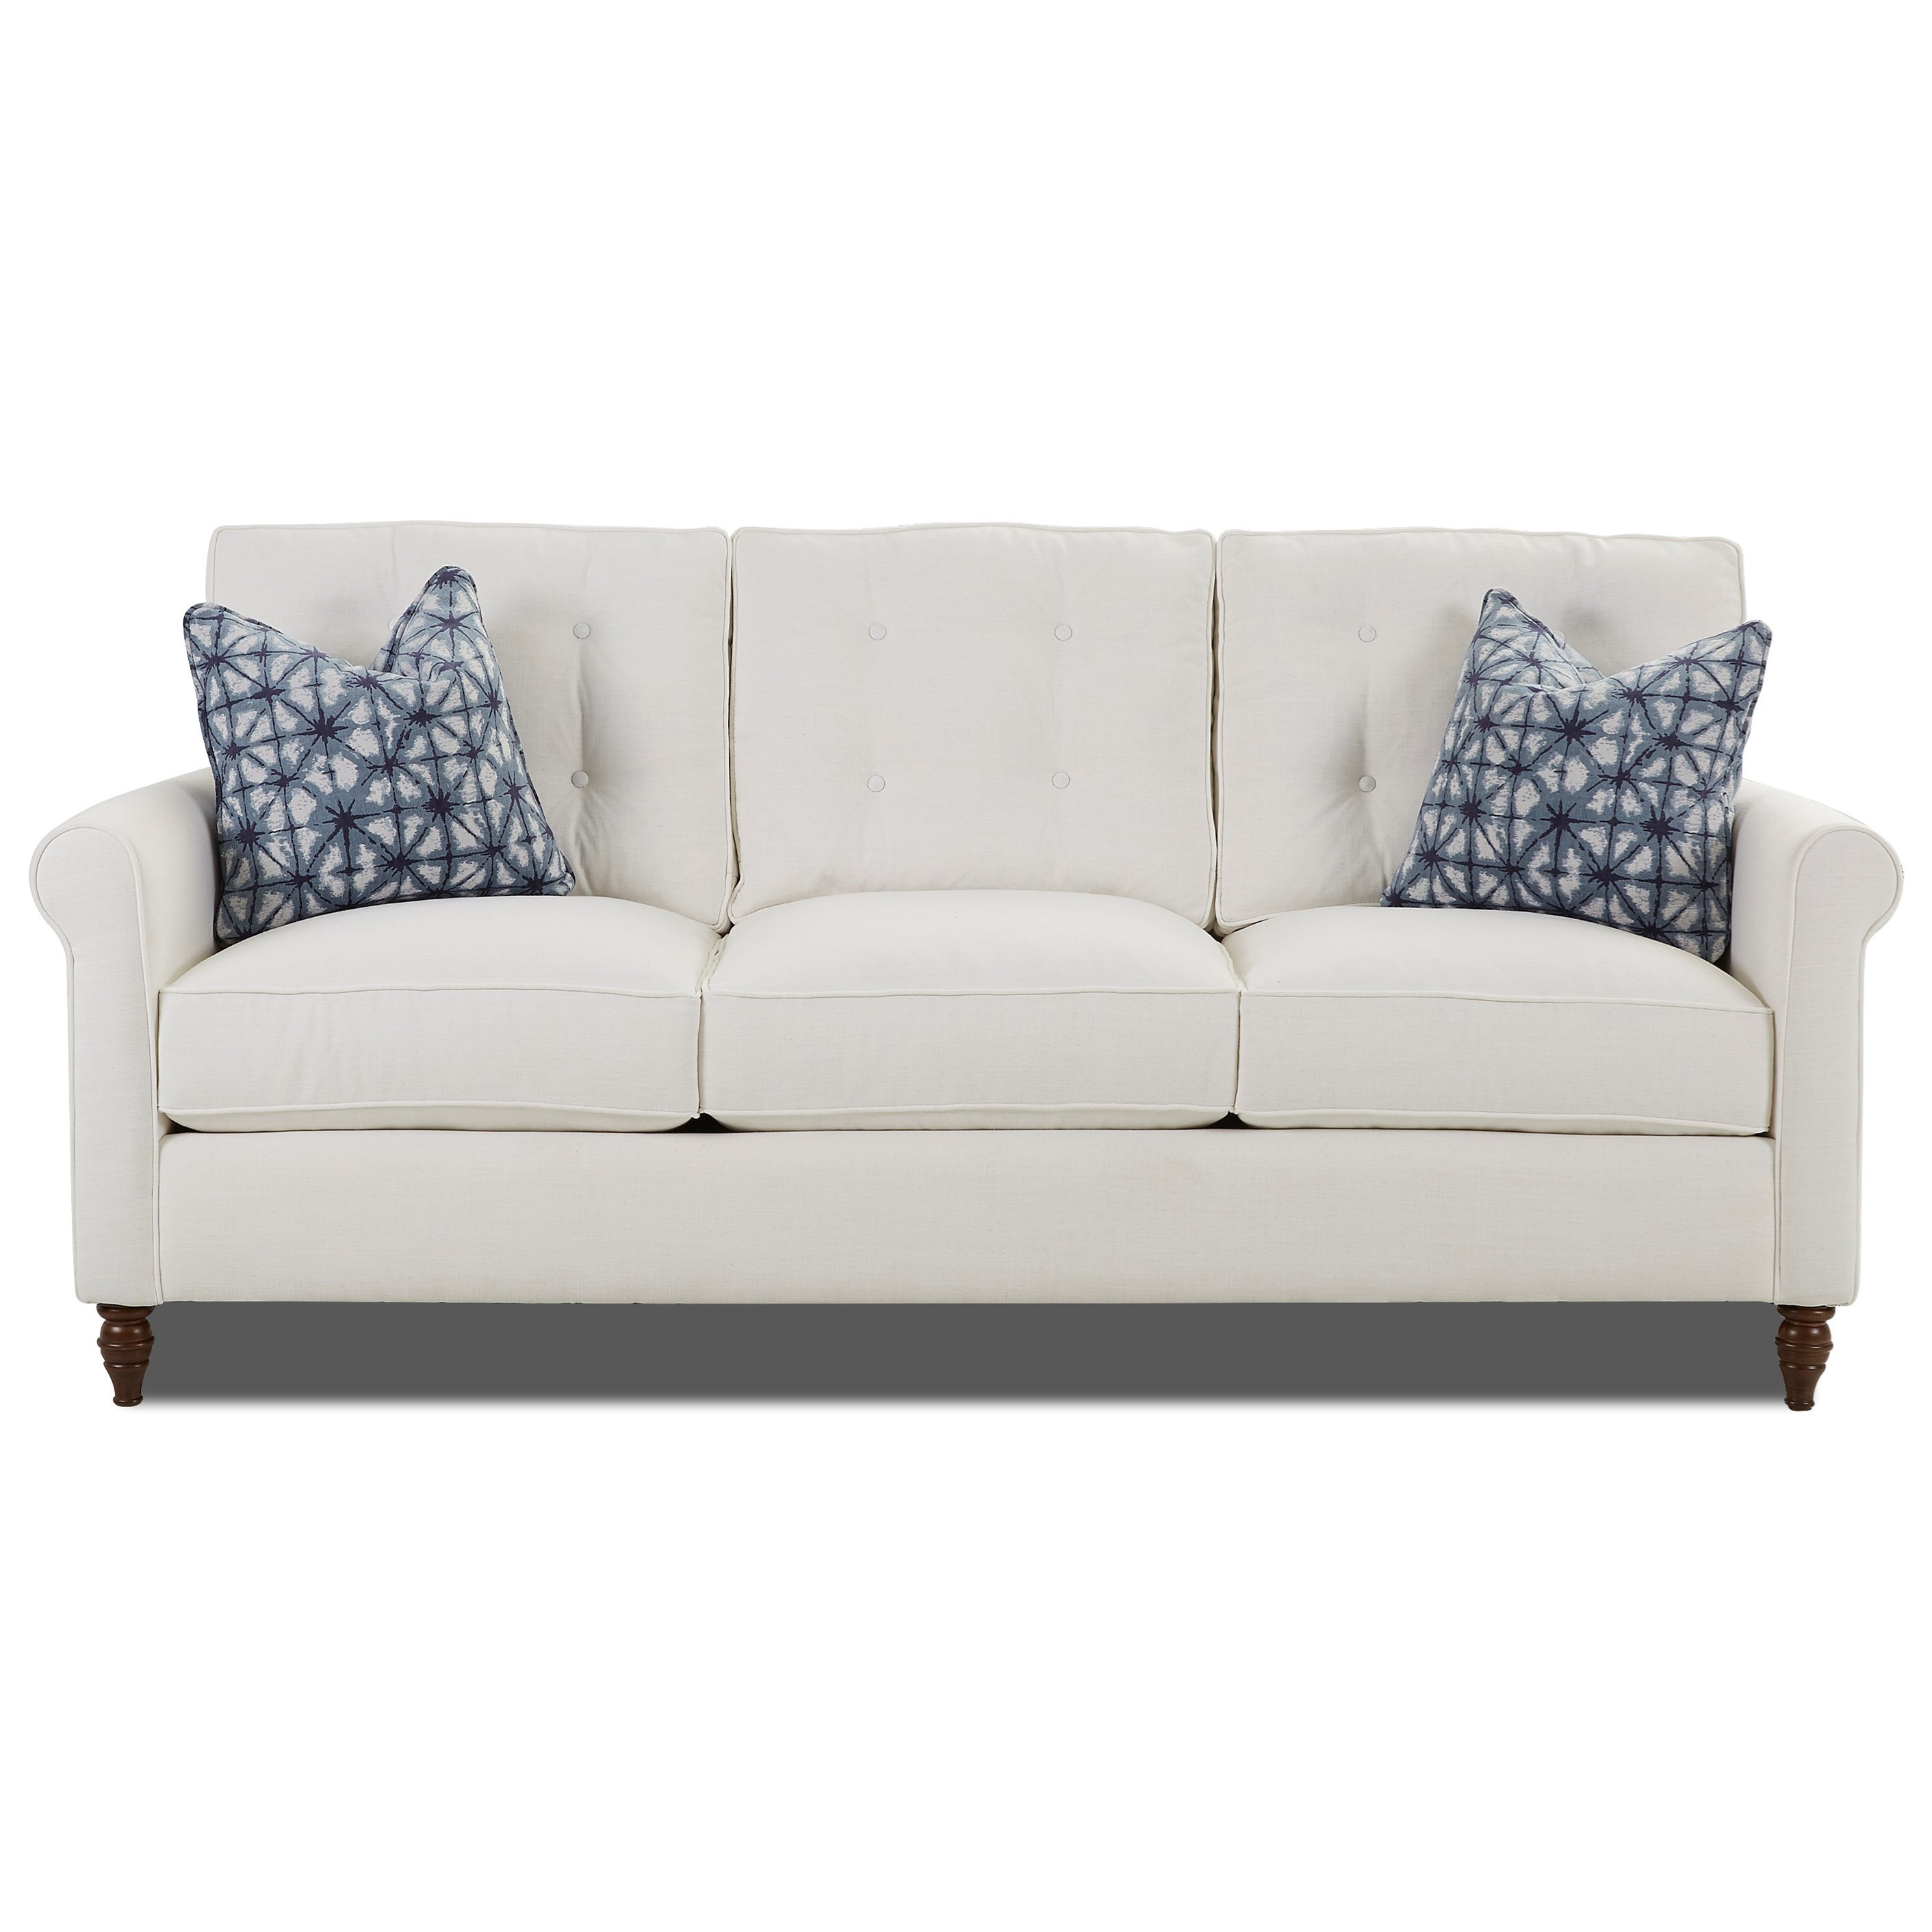 Traditional Sofa with Button Tufted Back Cushions by Klaussner